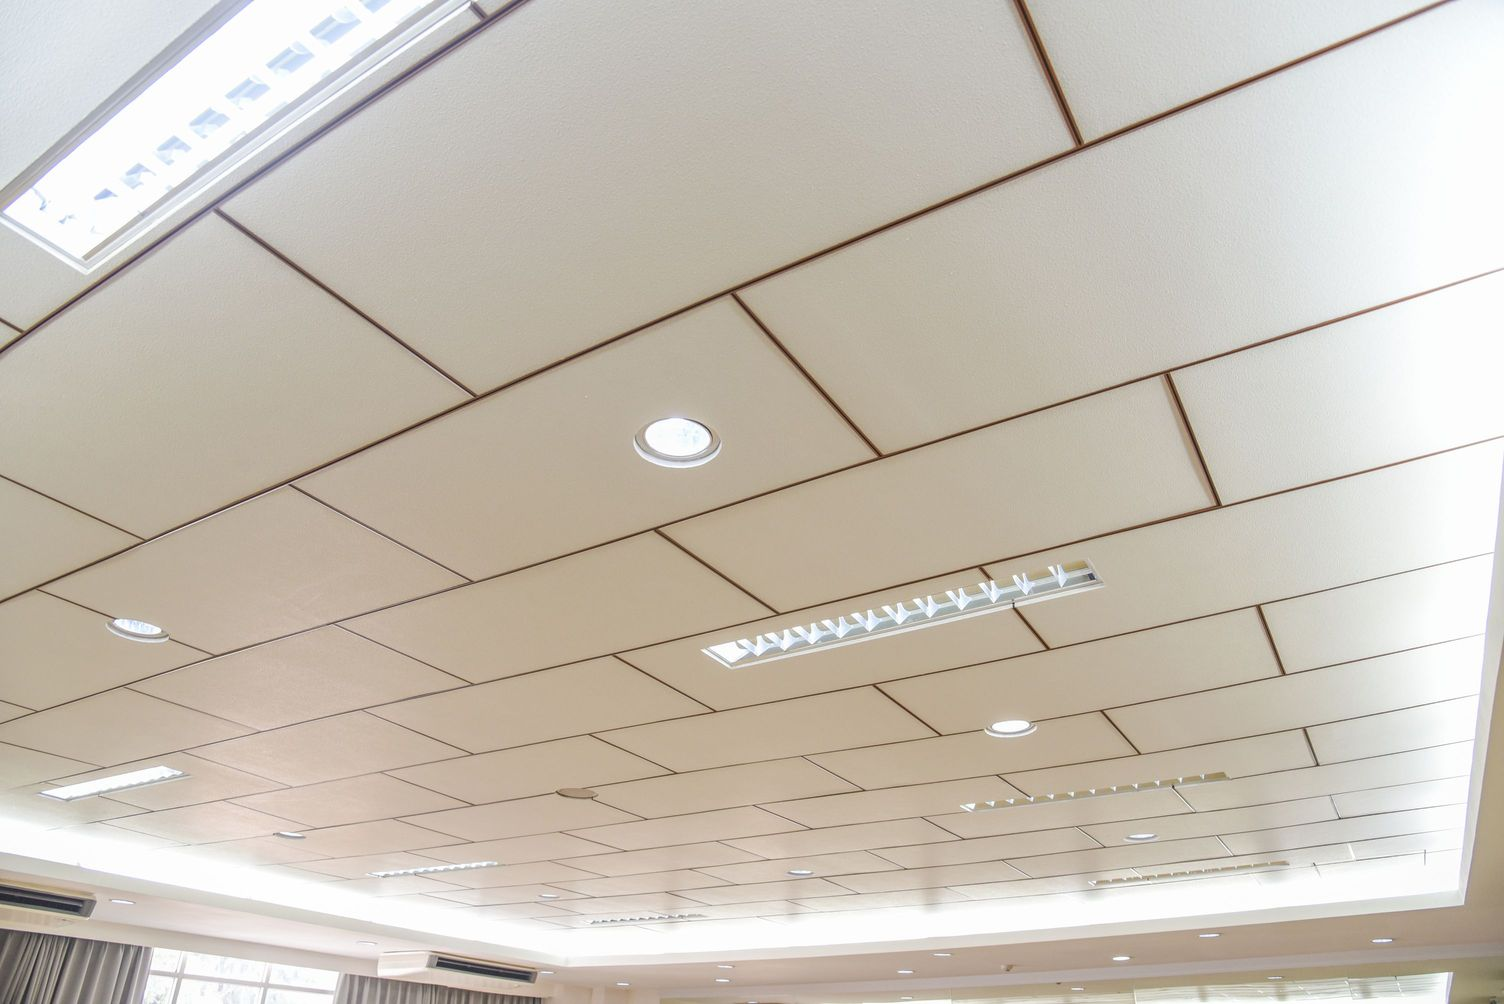 insulation board SCG Acoustic Ceiling Wondery (11)